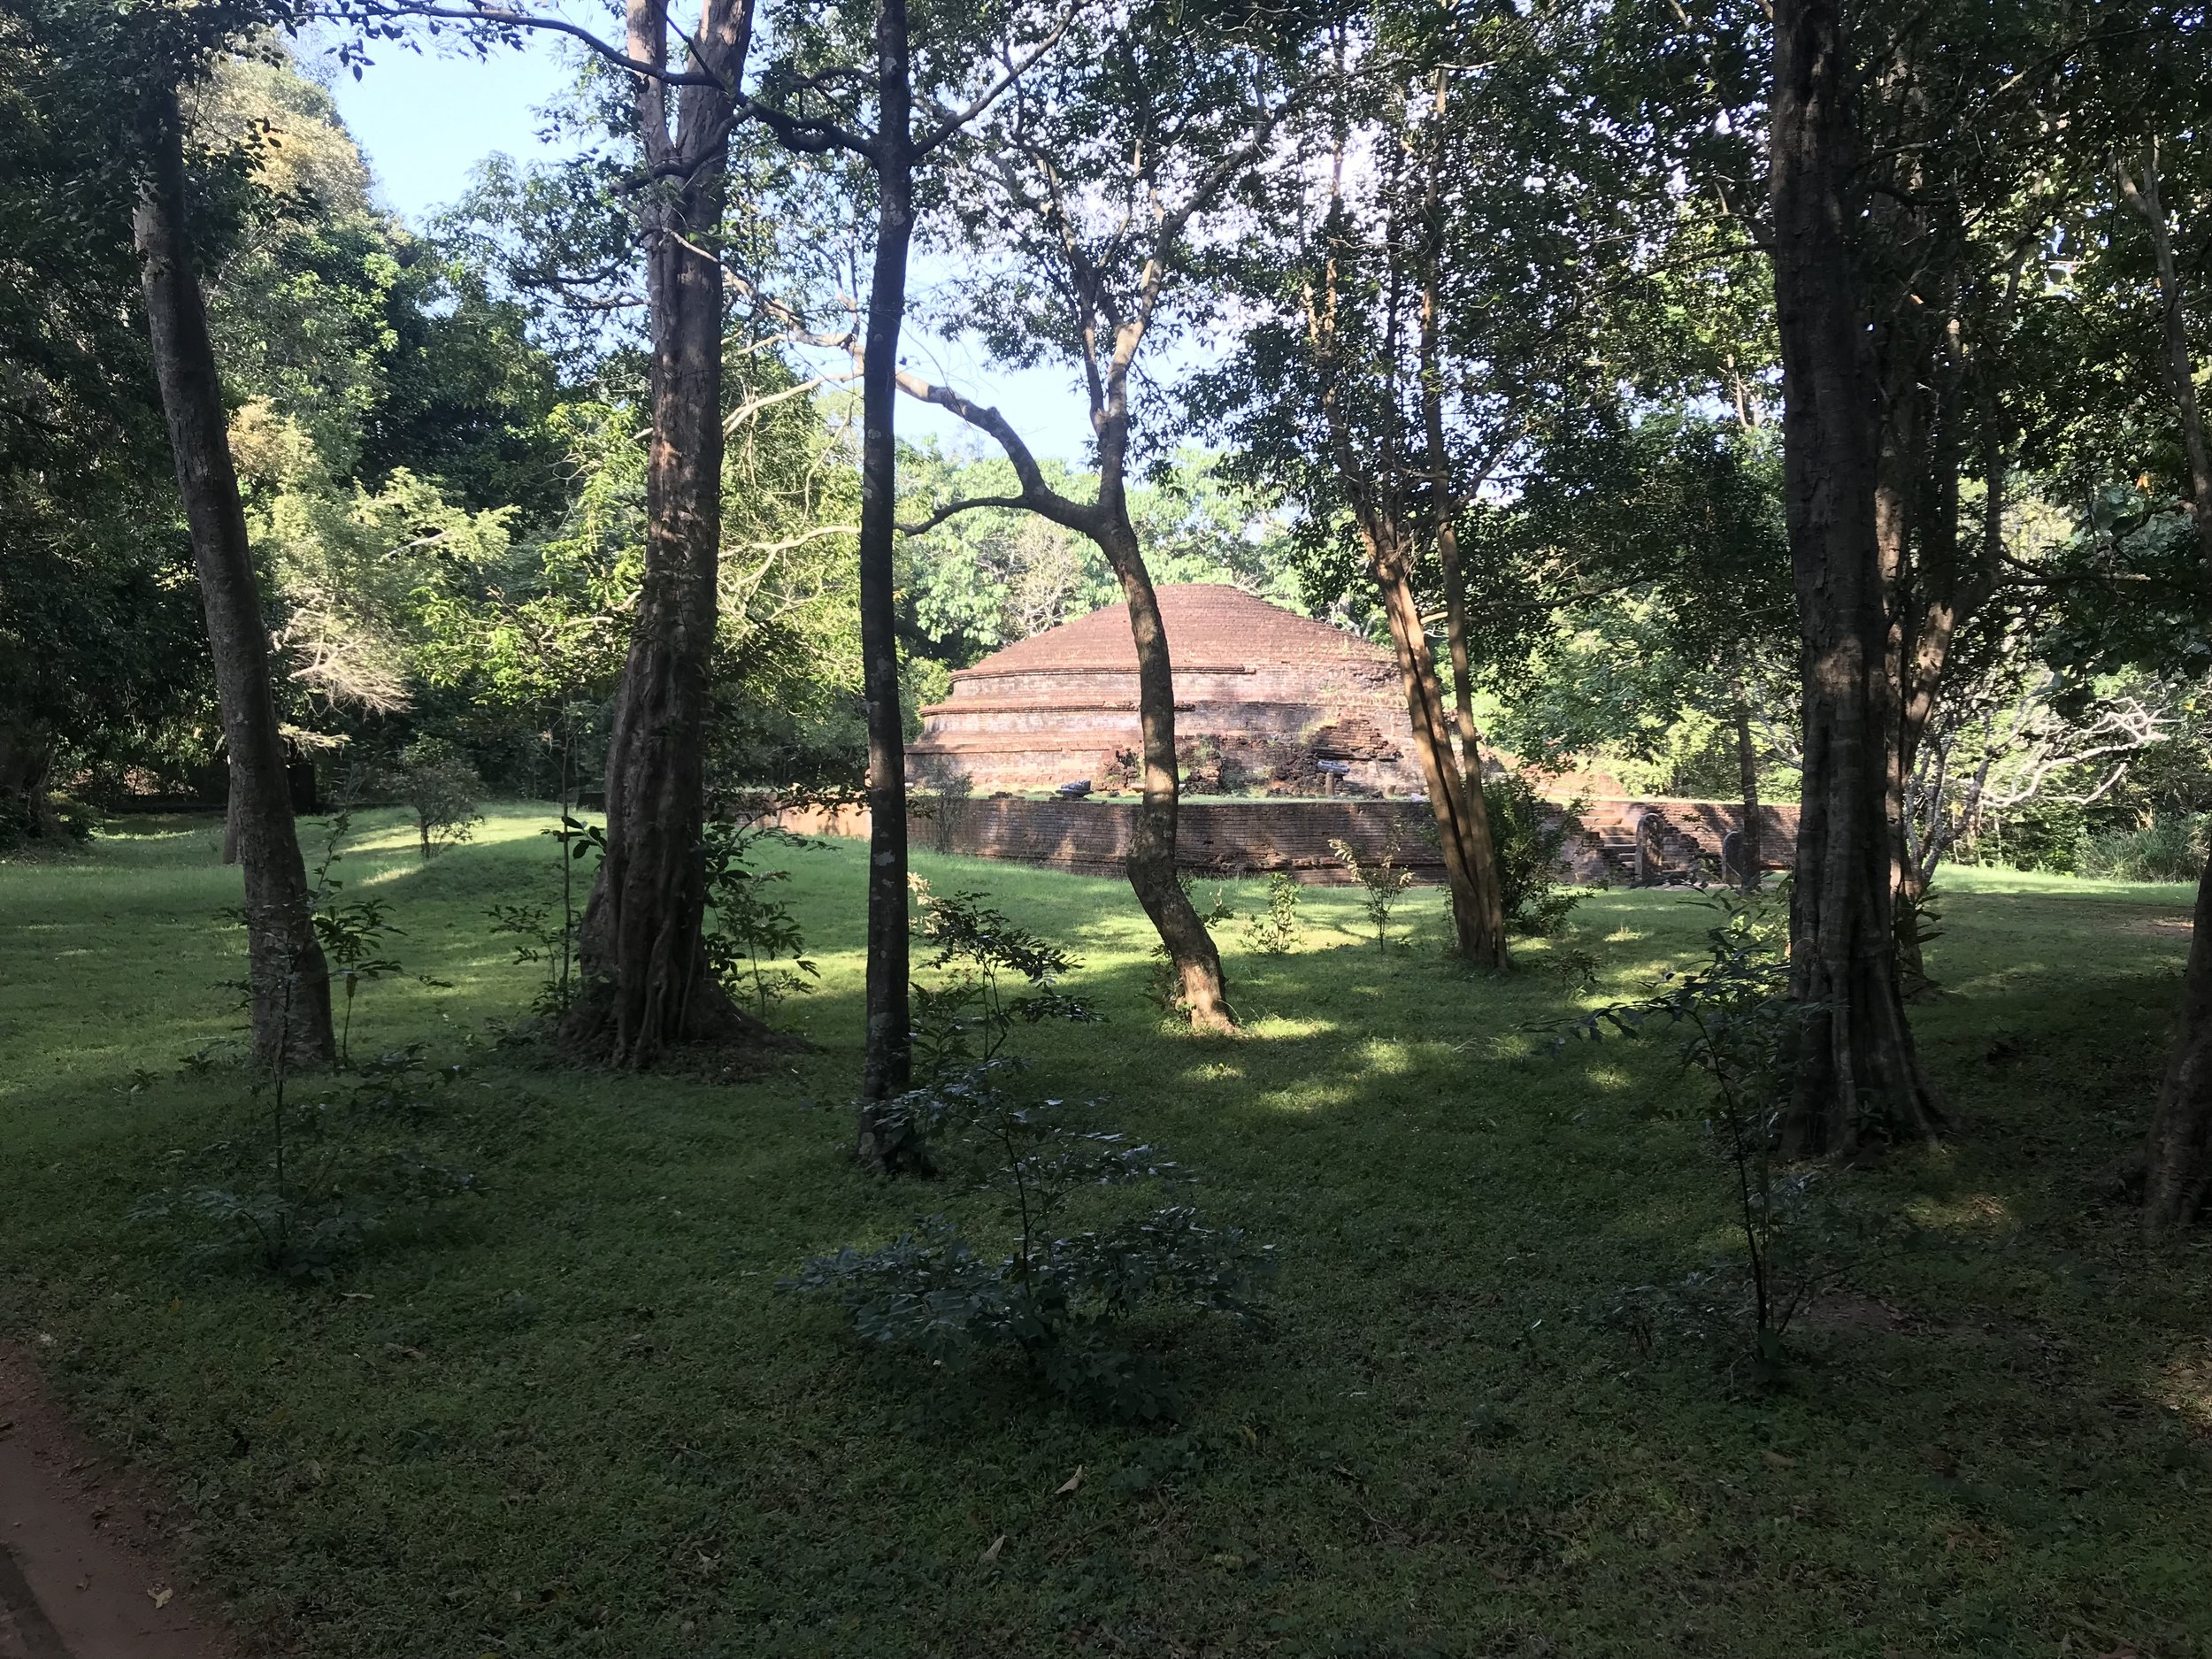 A dagaba (stupa) in the forest reserve where the primate project takes place.